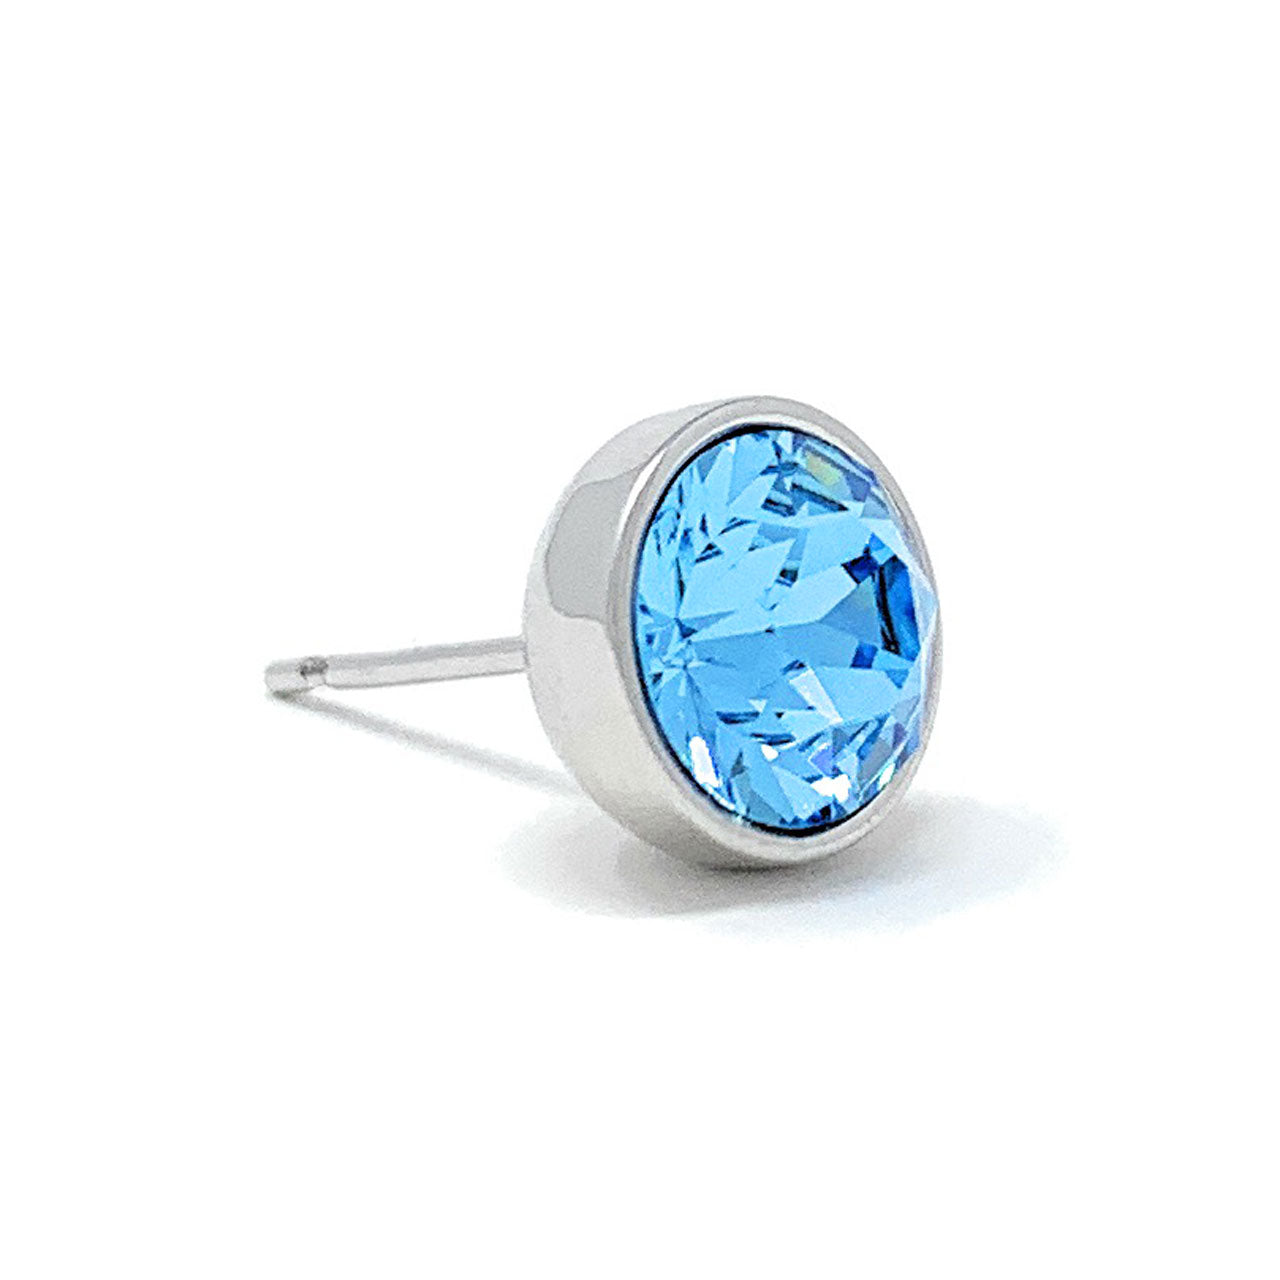 Harley Stud Earrings with Blue Aquamarine Round Crystals from Swarovski Silver Toned Rhodium Plated - Ed Heart